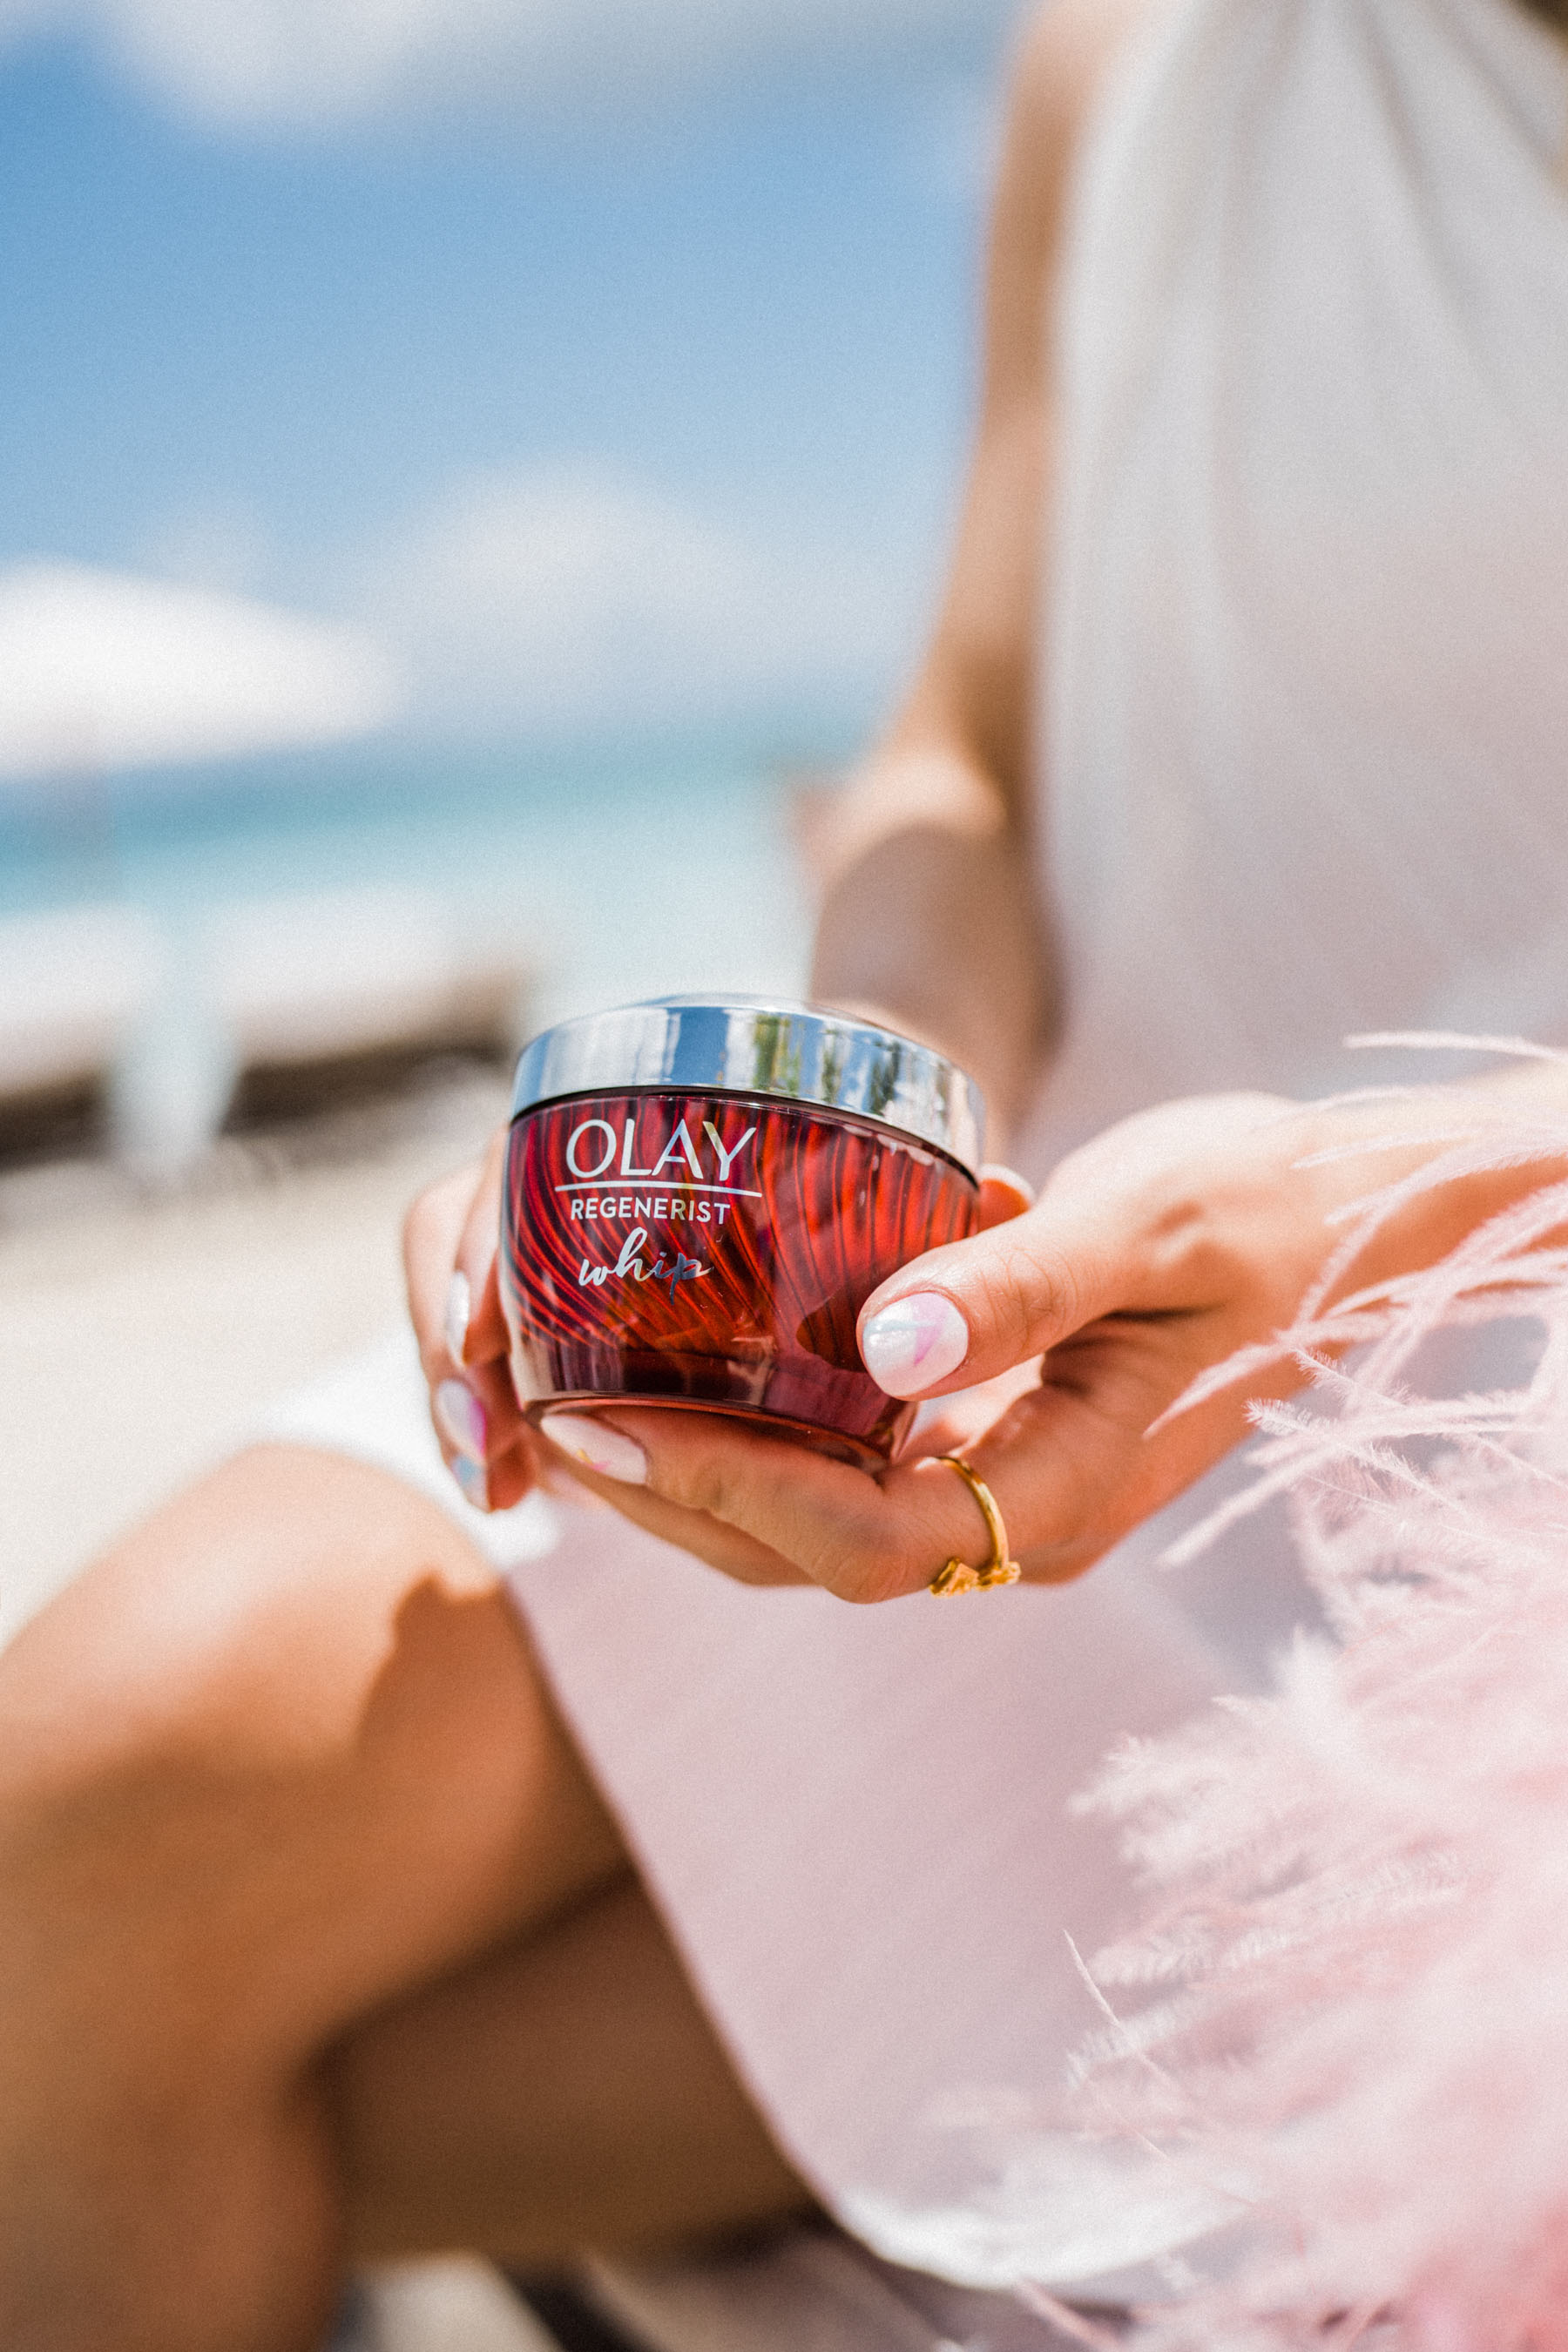 essential moisturizers for fresh summer skin, Olay regenerist whip face moisturizer // Notjessfashion.com